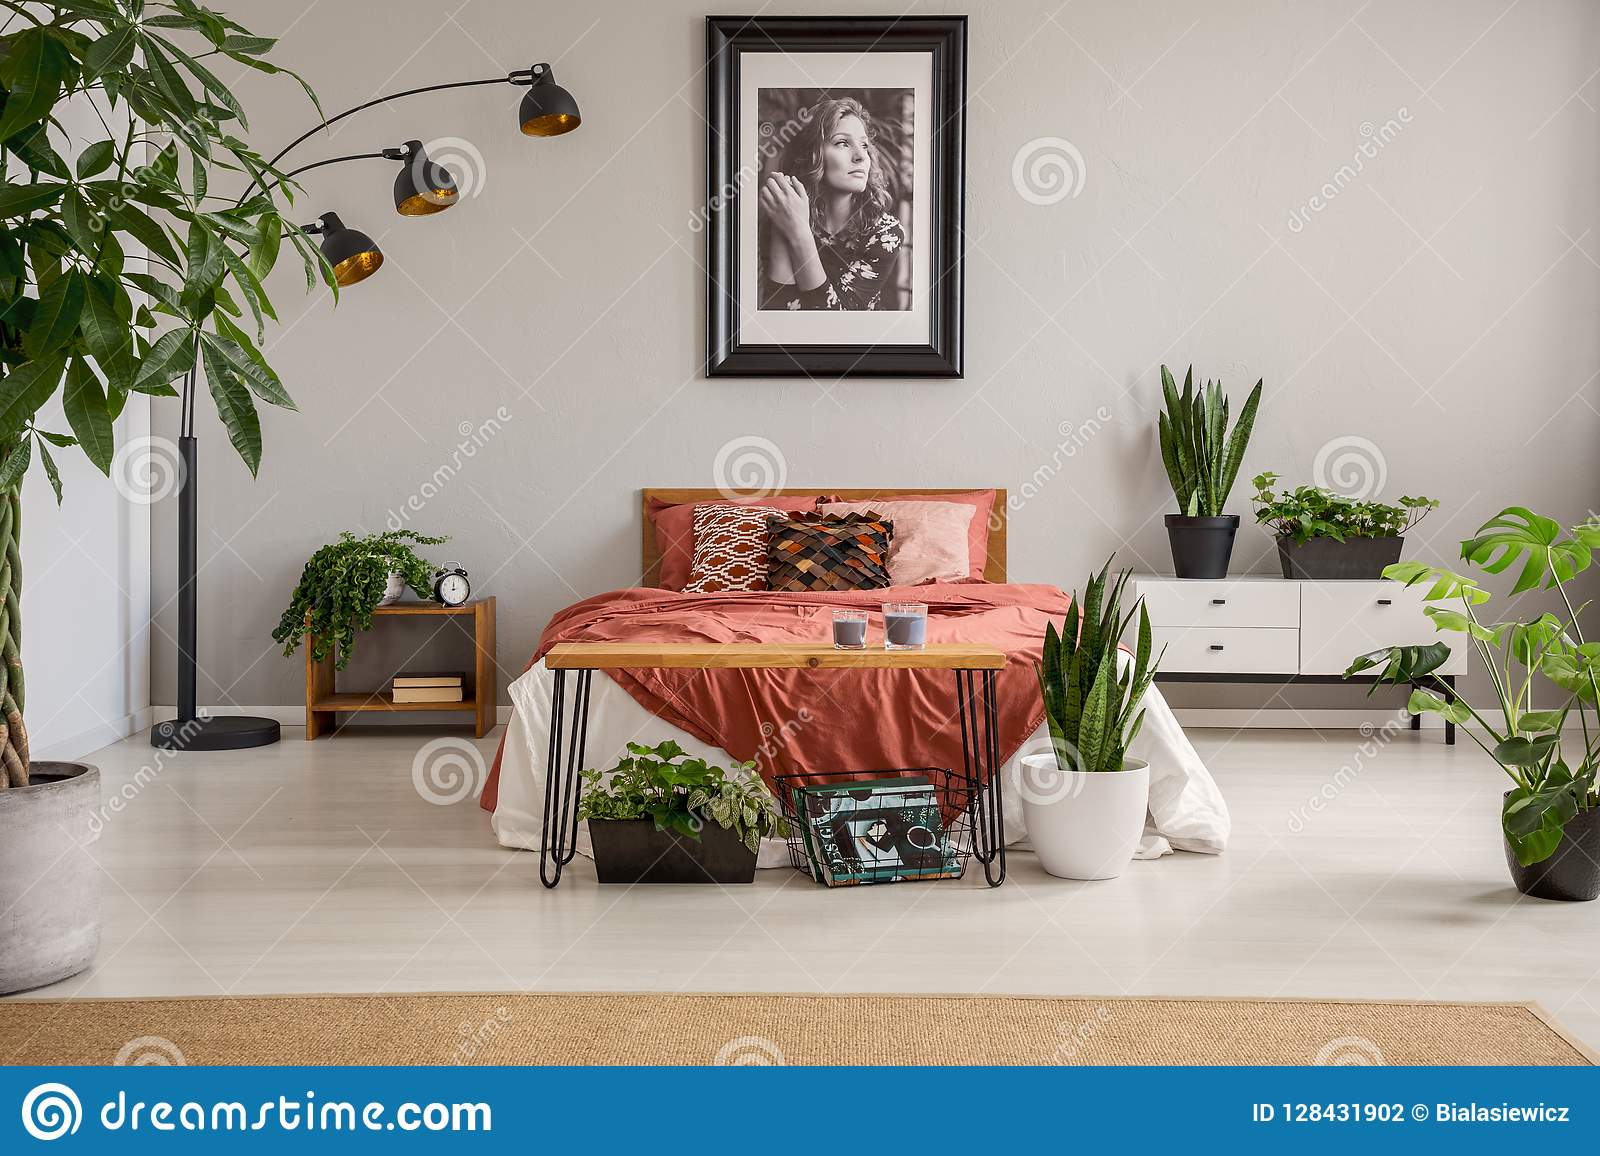 Poster Above Red Bed With Blanket In Grey Bedroom Interior With Plants And Carpet Stock Photo Image Of Plants Bedroom 128431902